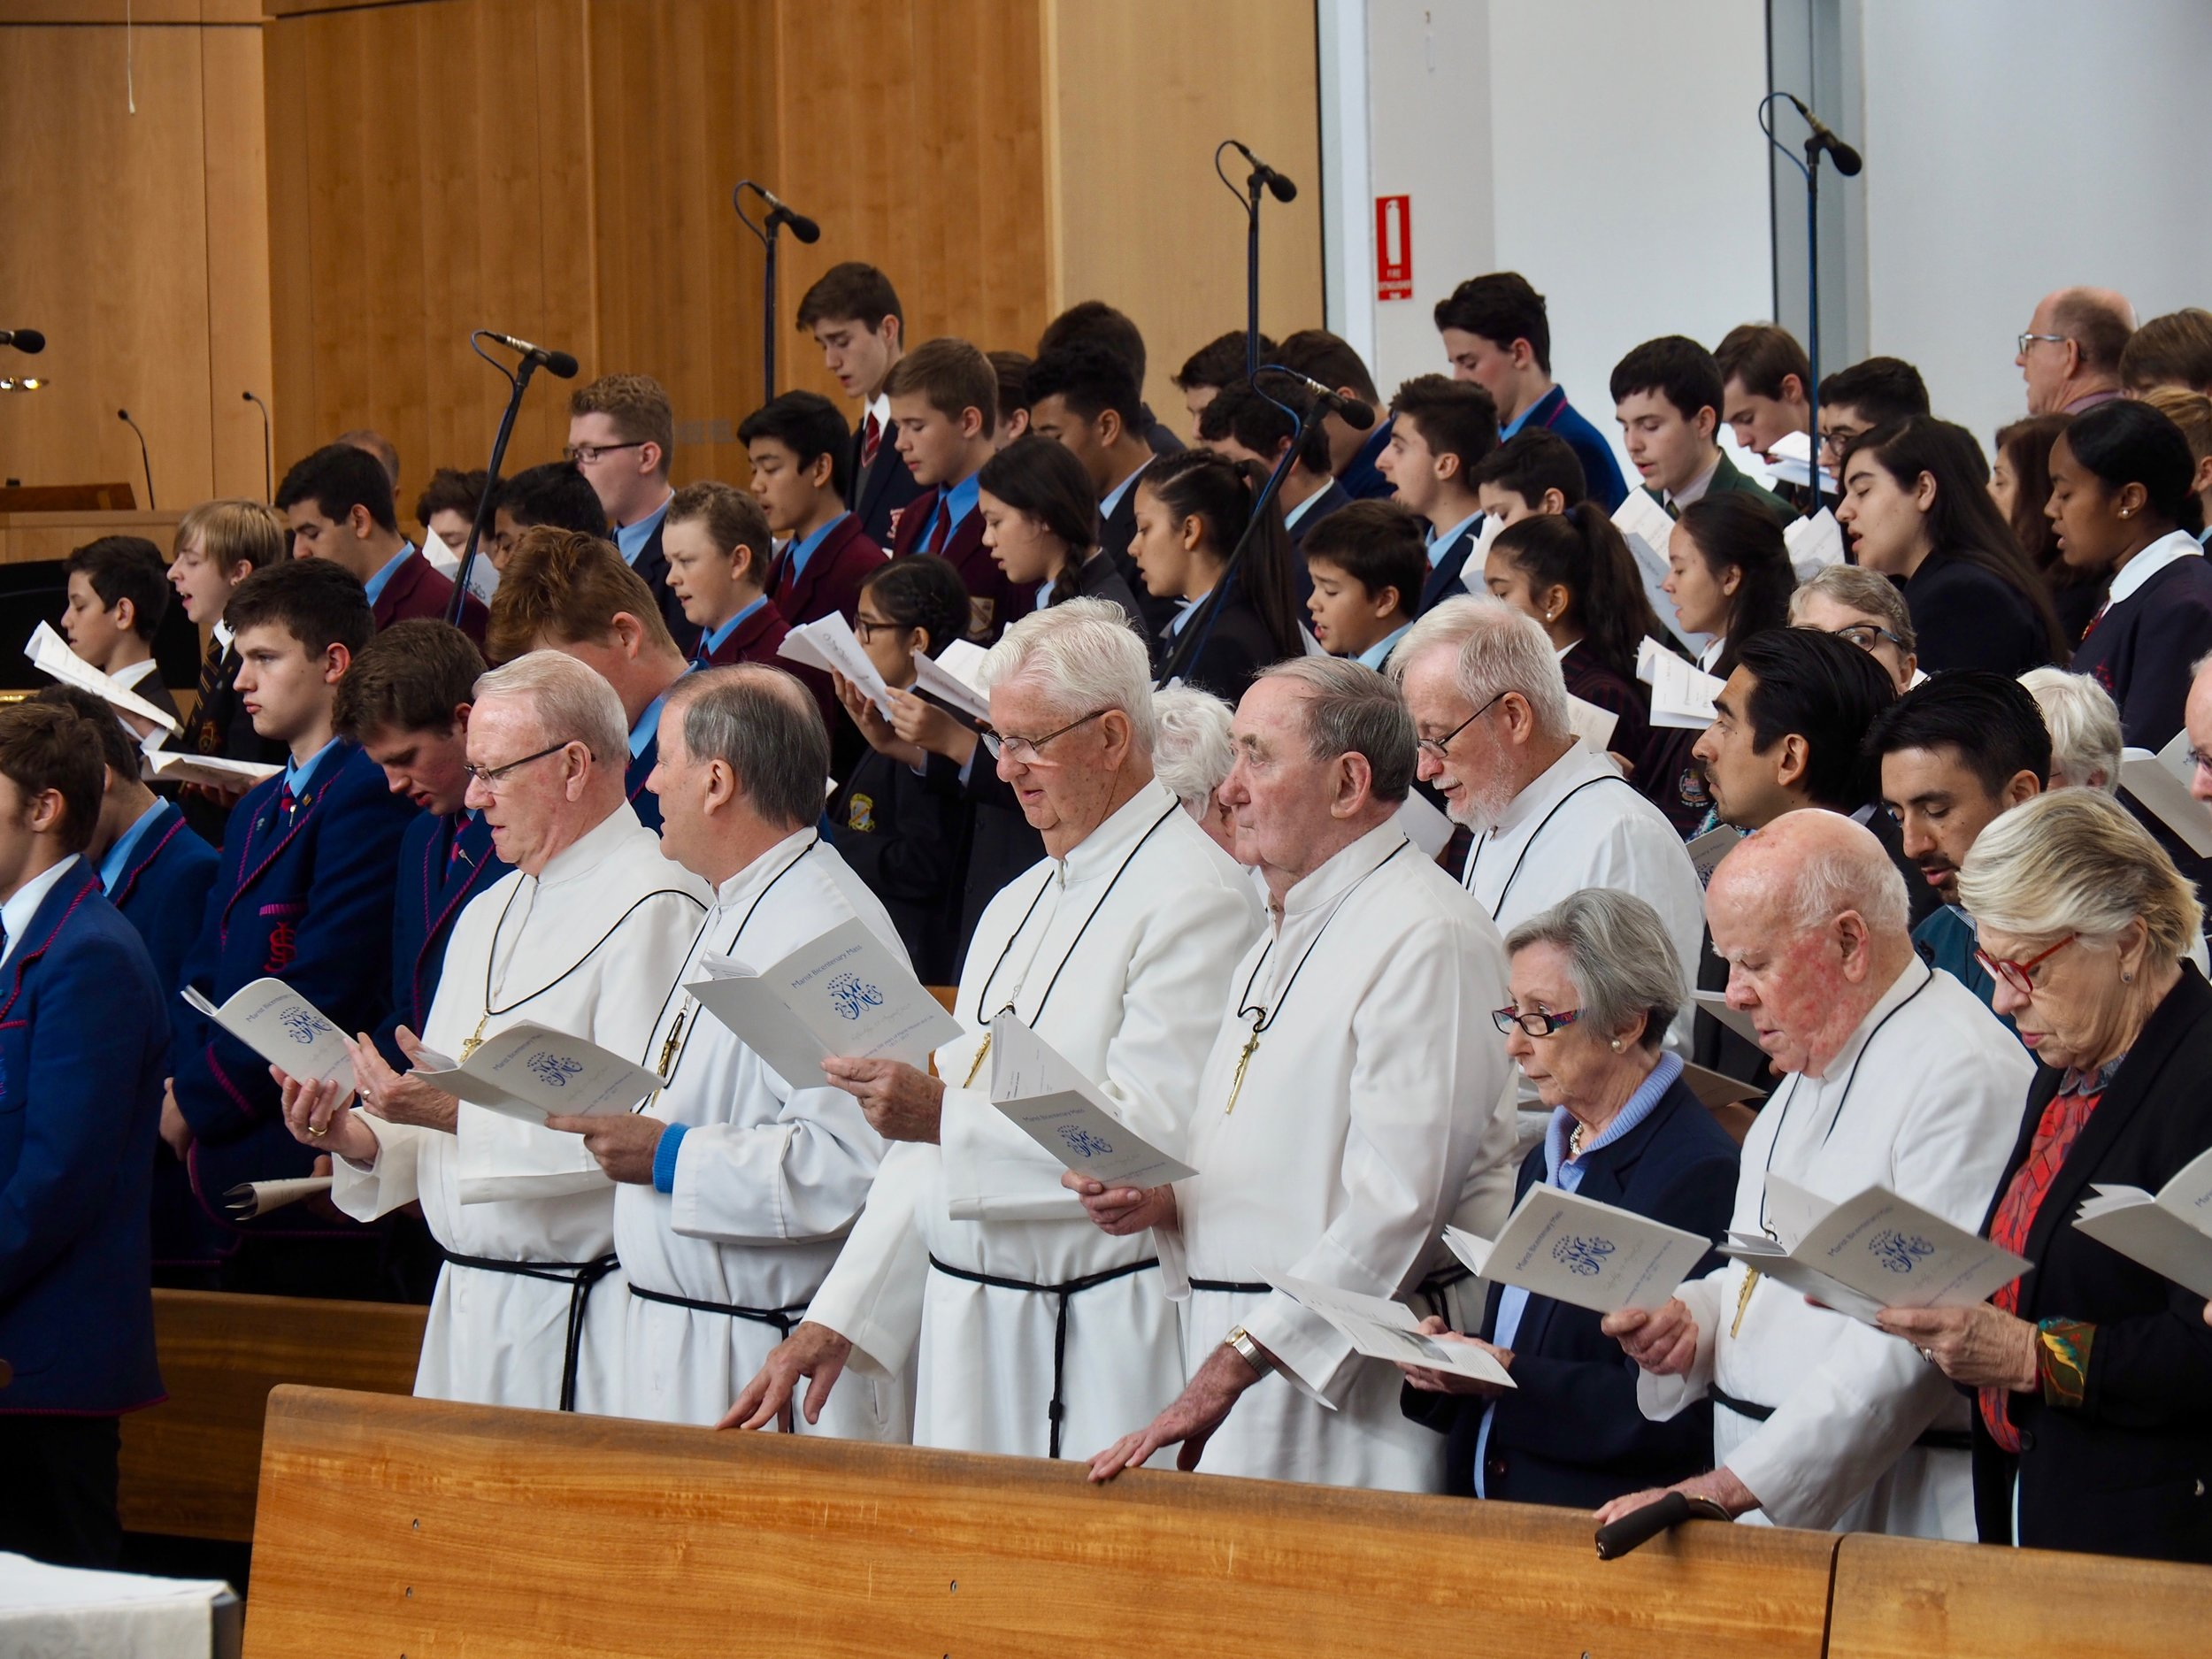 Bicentenary Mass Sydney 12 Aug 2017 Photos by Paul Harris 00010.jpg